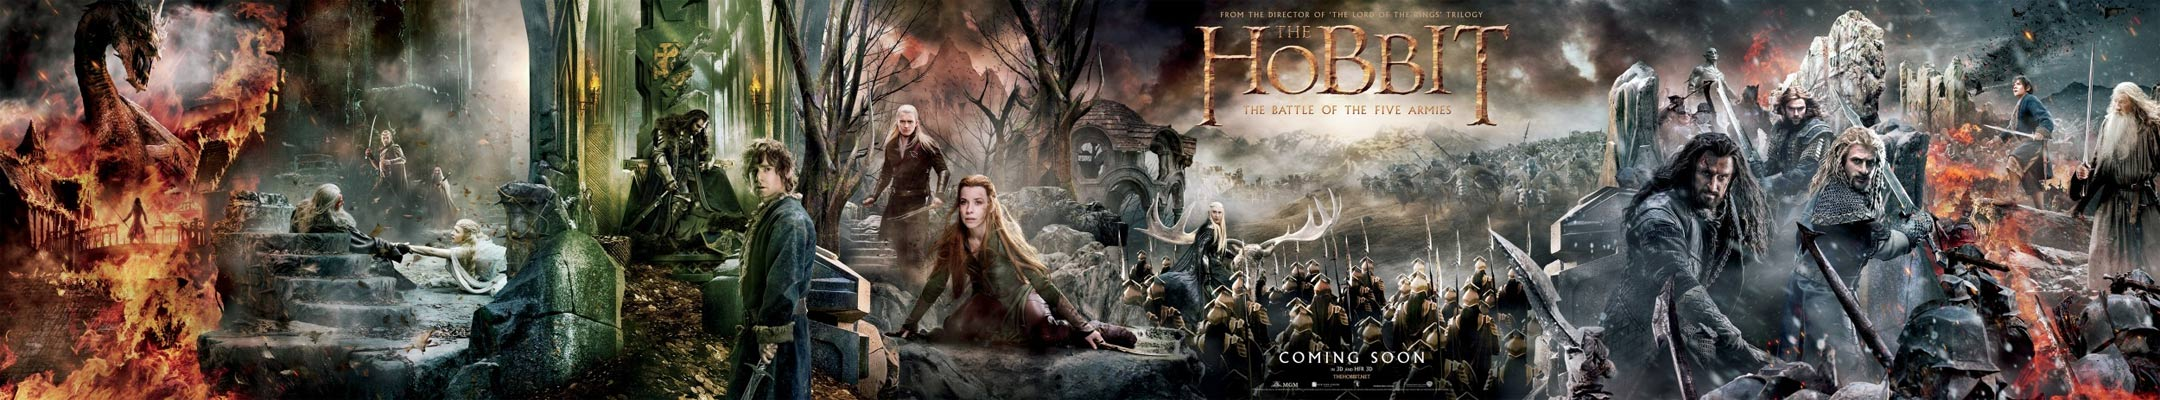 The Hobbit: The Battle of the Five Armies Poster #2